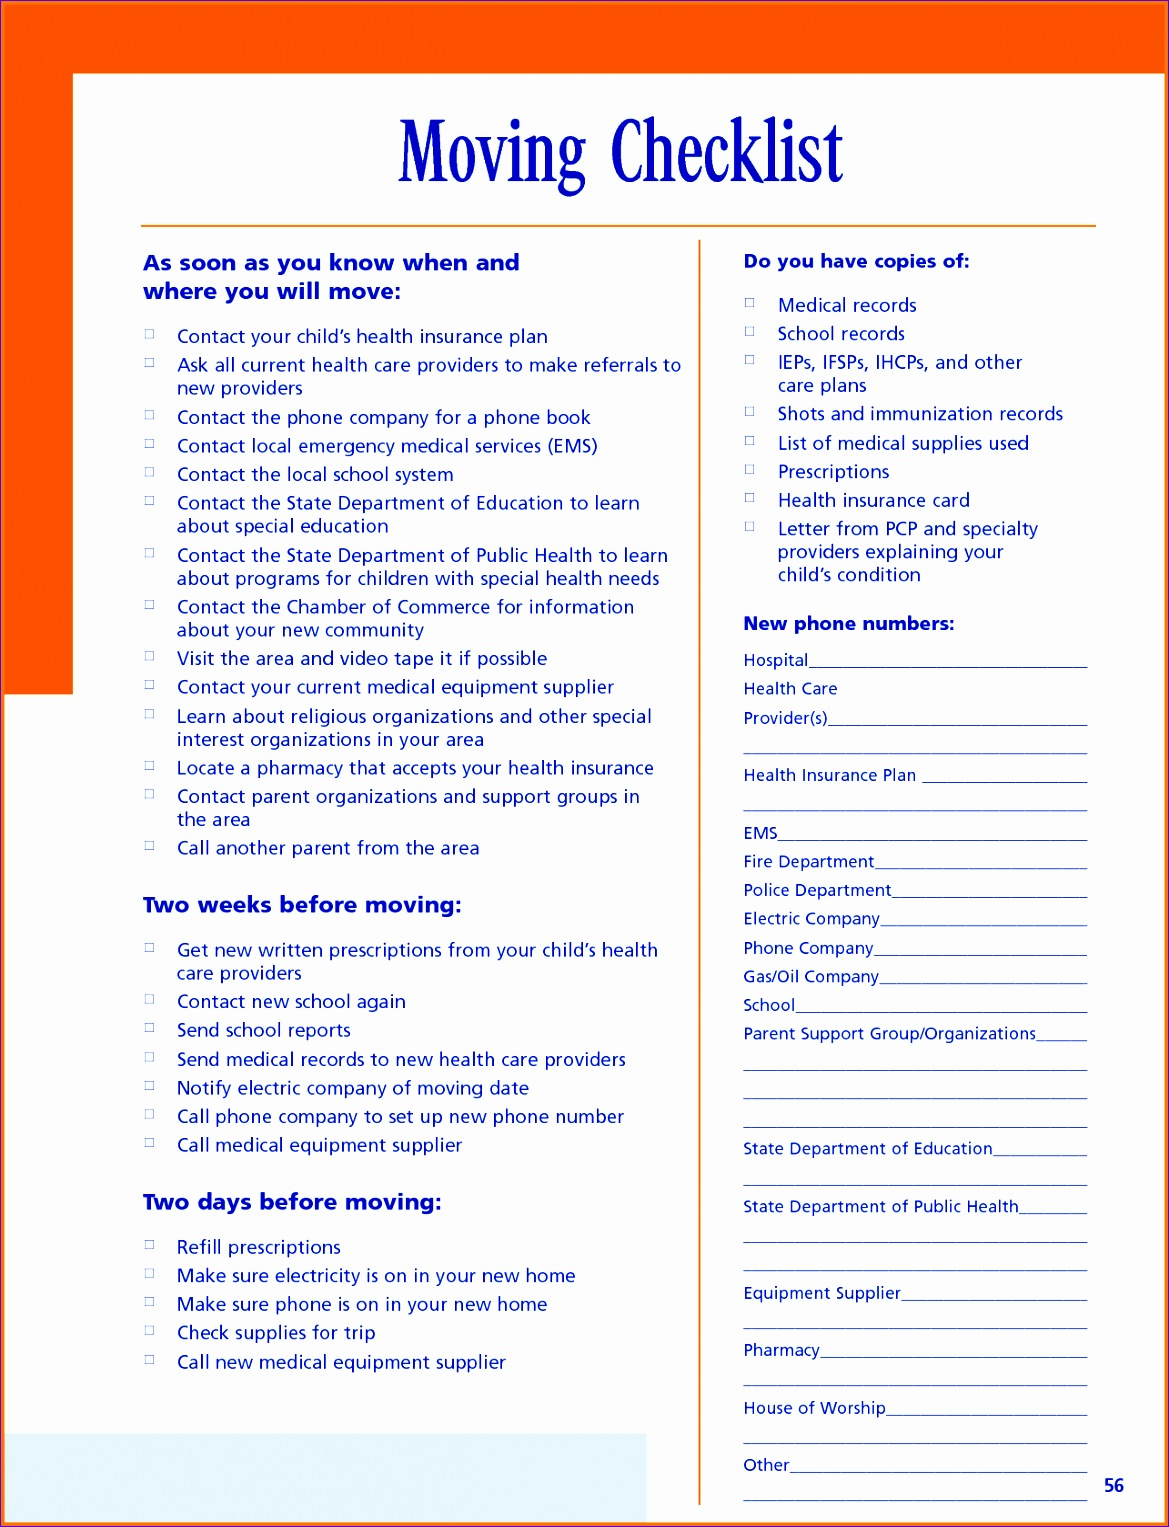 moving checklist template 11691527